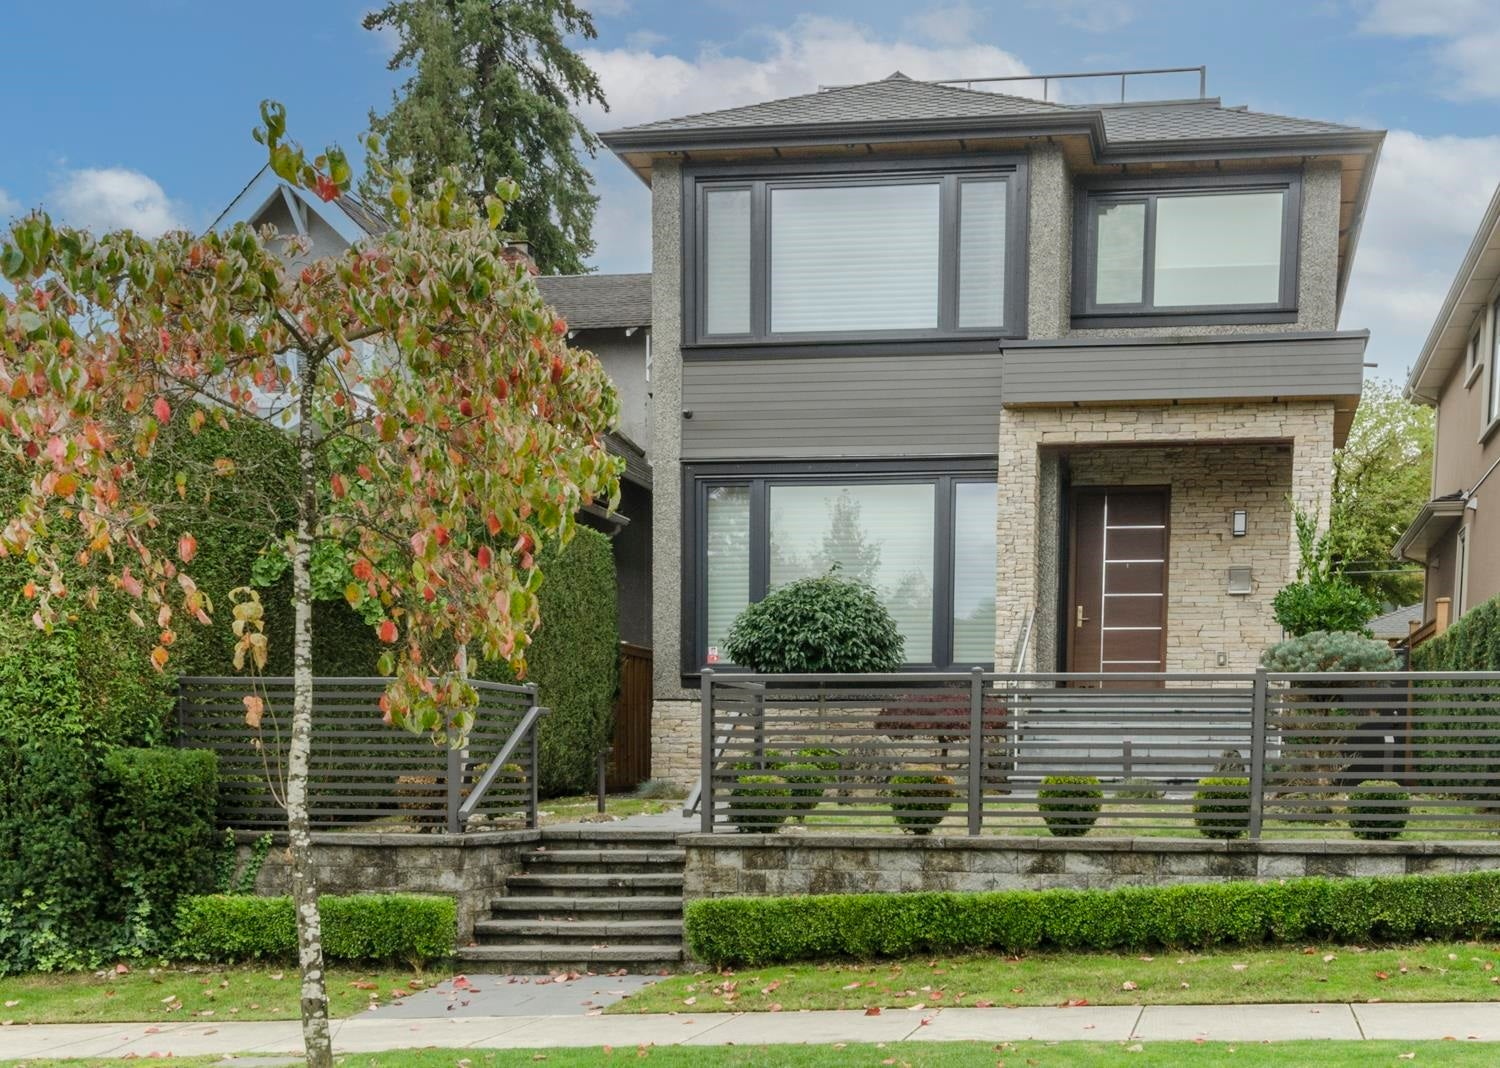 4468 W 13TH AVENUE - Point Grey House/Single Family for sale, 4 Bedrooms (R2625519)